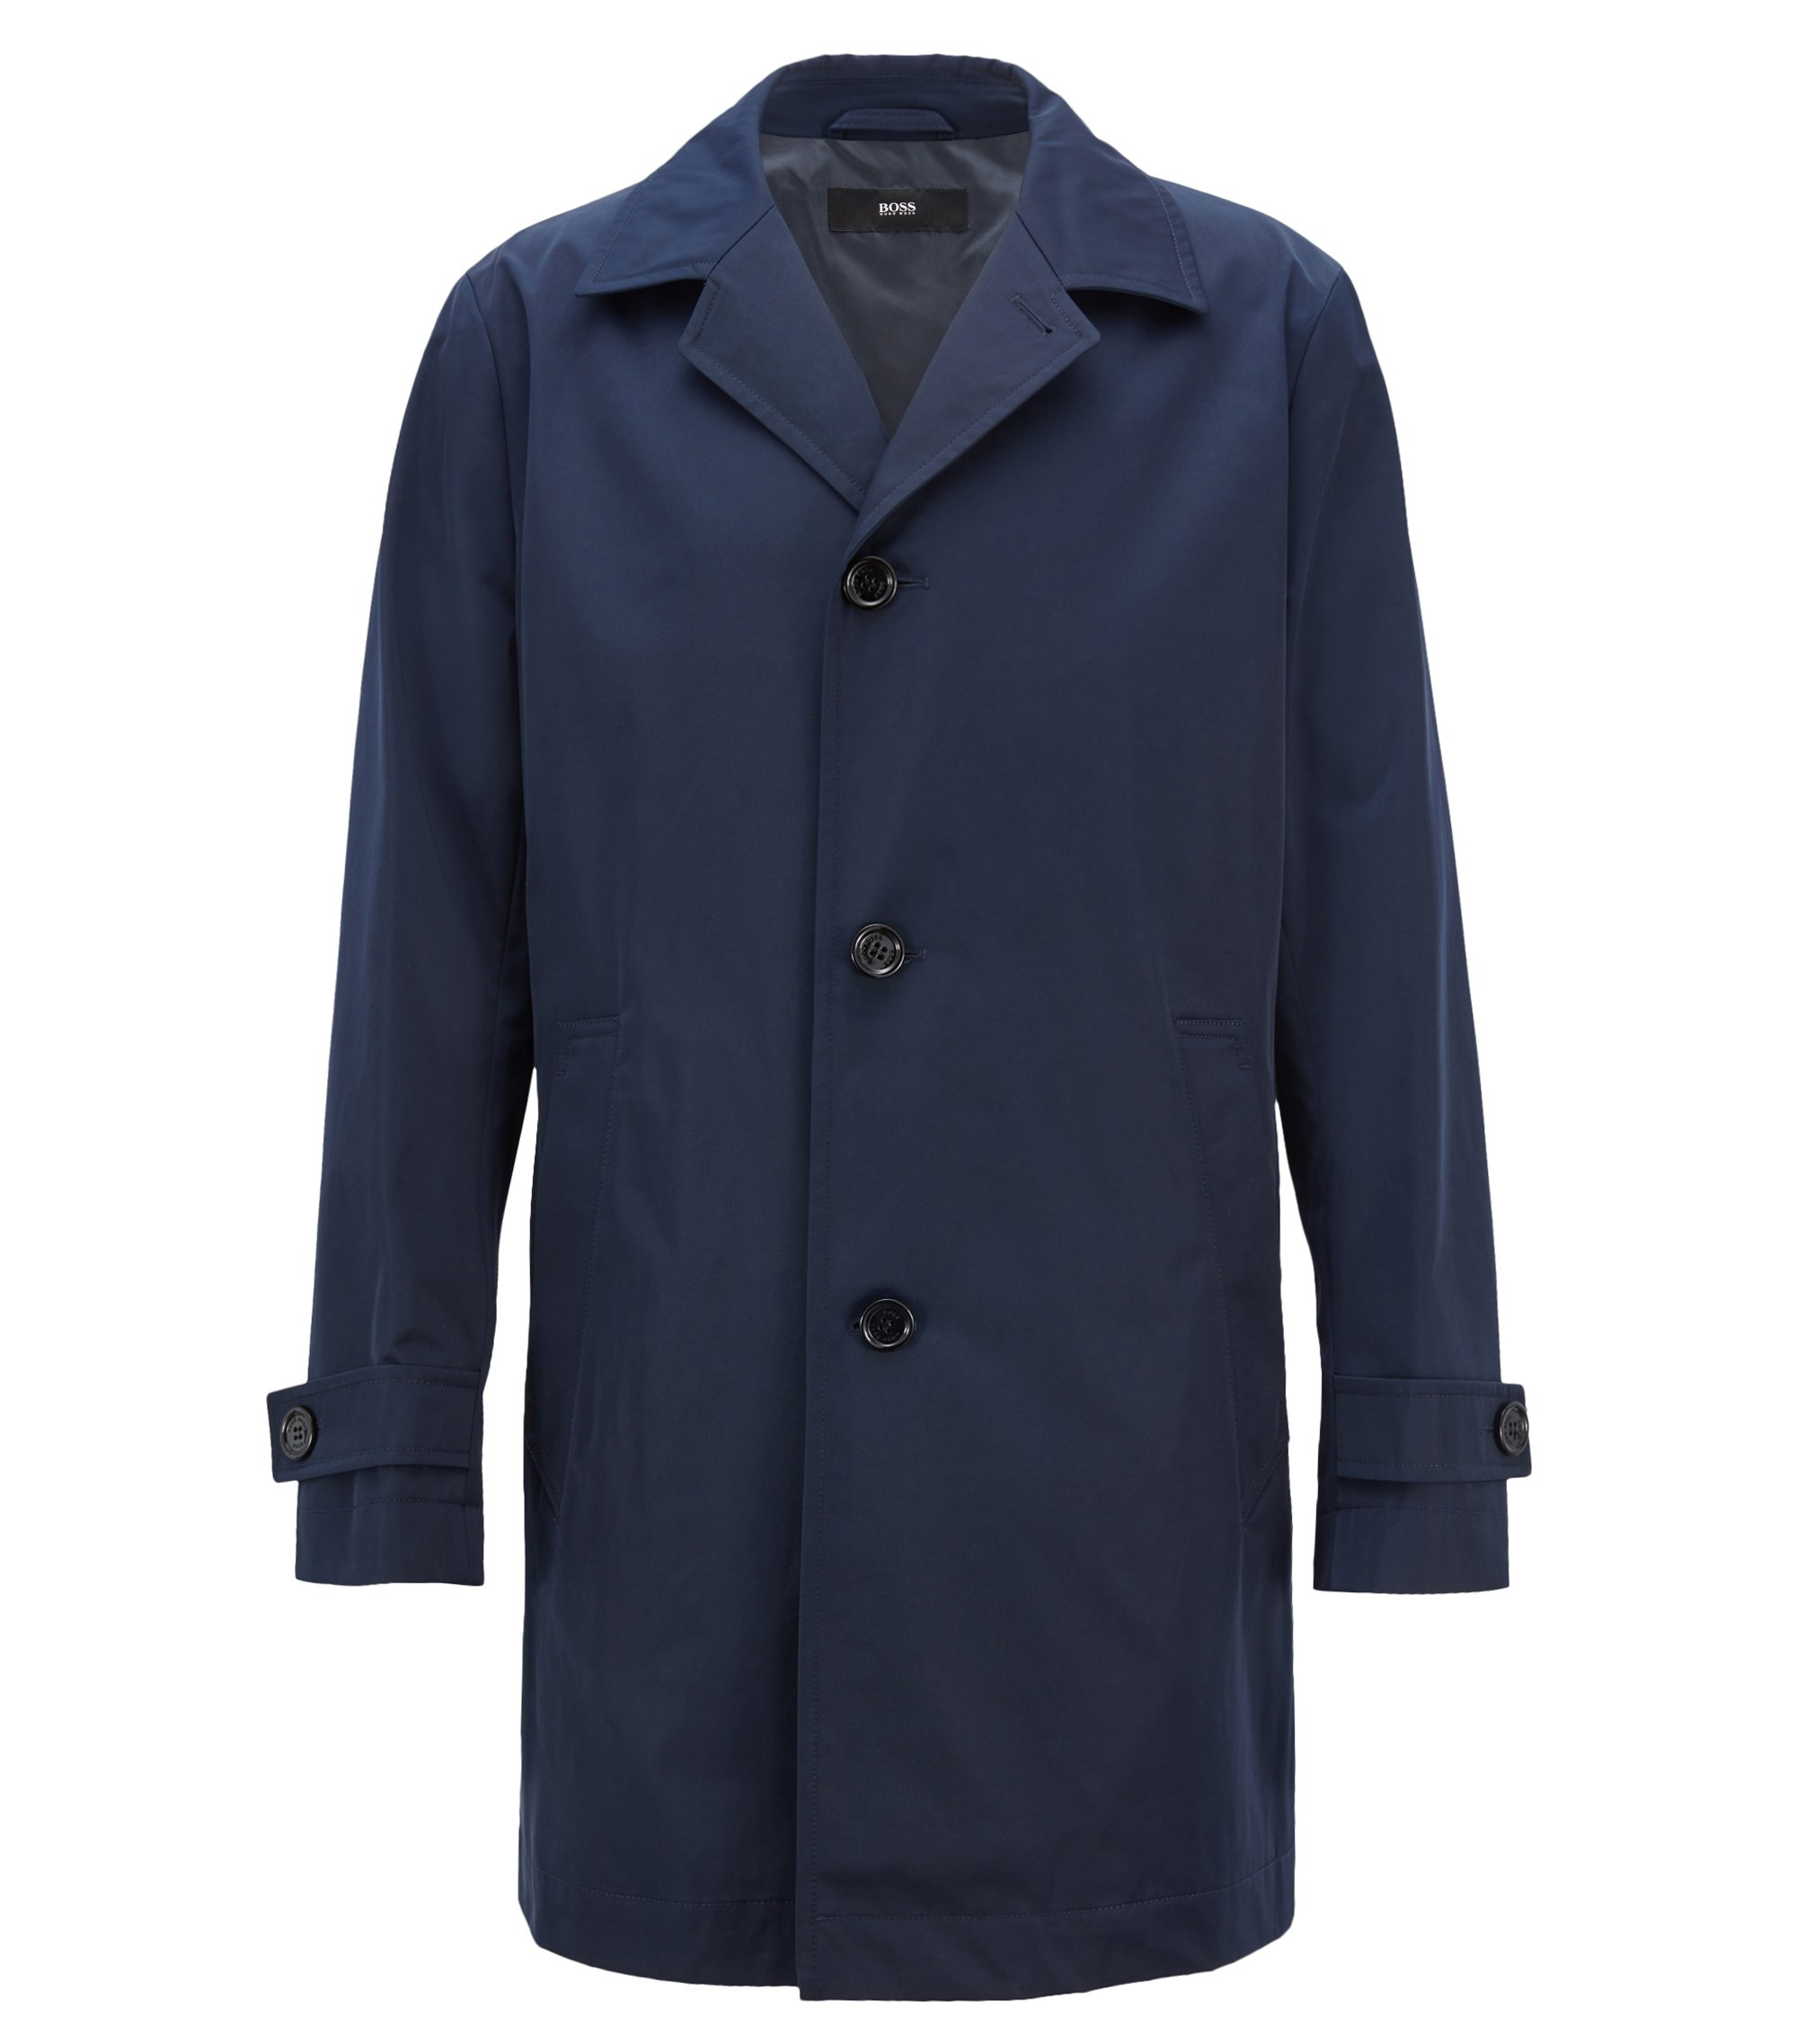 Cappotto idrorepellente in twill tecnico, Blu scuro